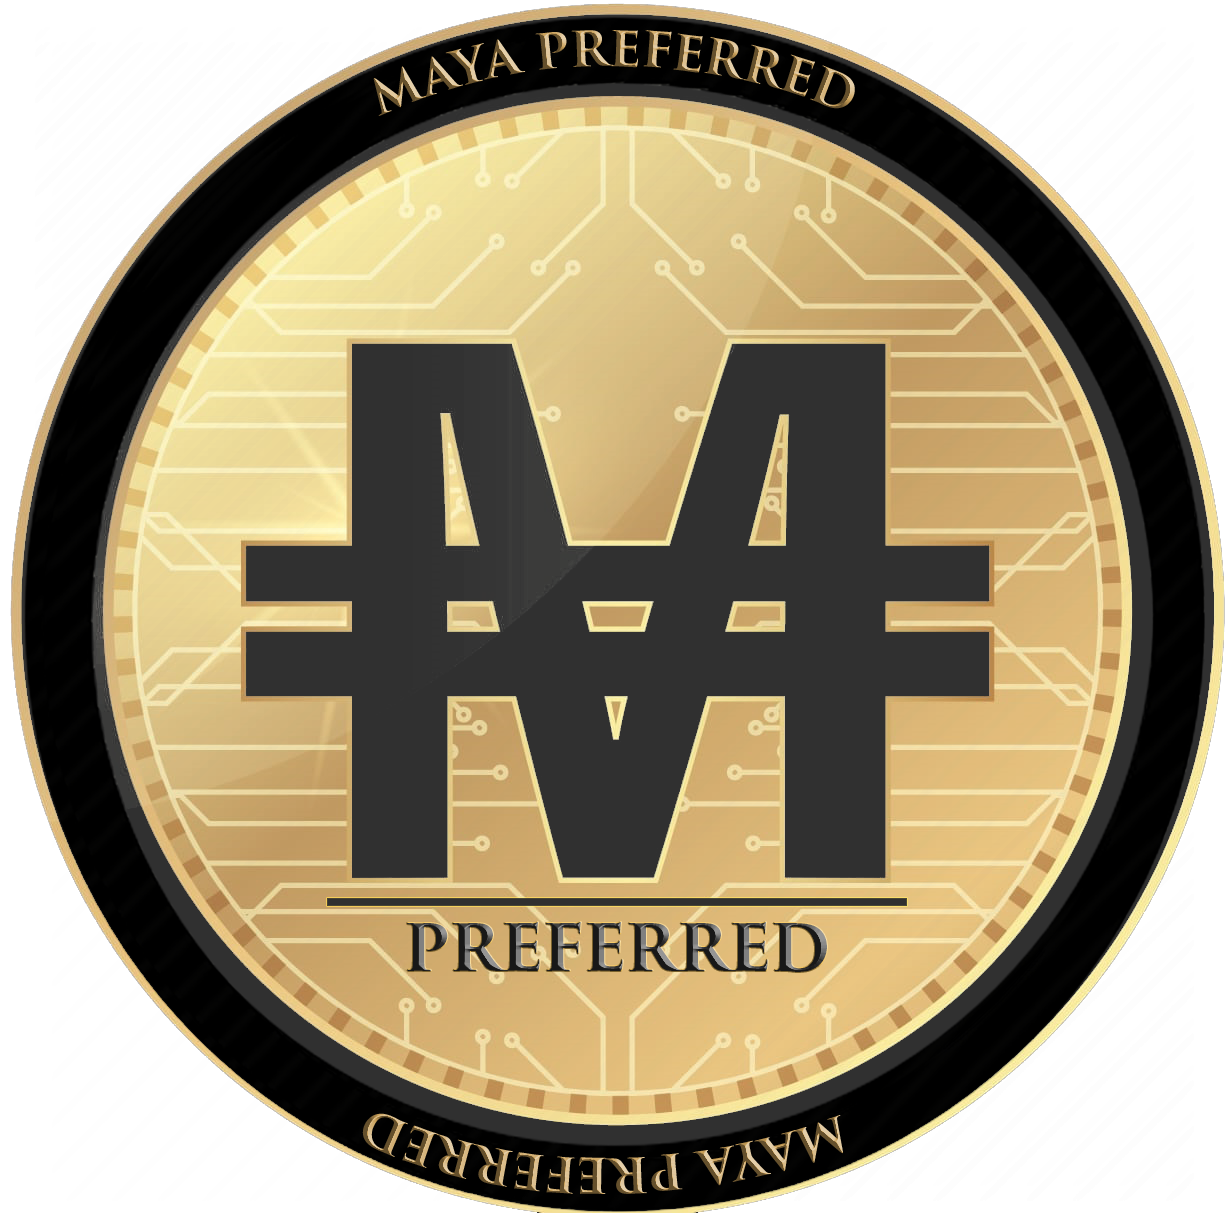 Maya Preferred 223 (MAPR) stabilizes BITCOIN with Gold and Silver backing